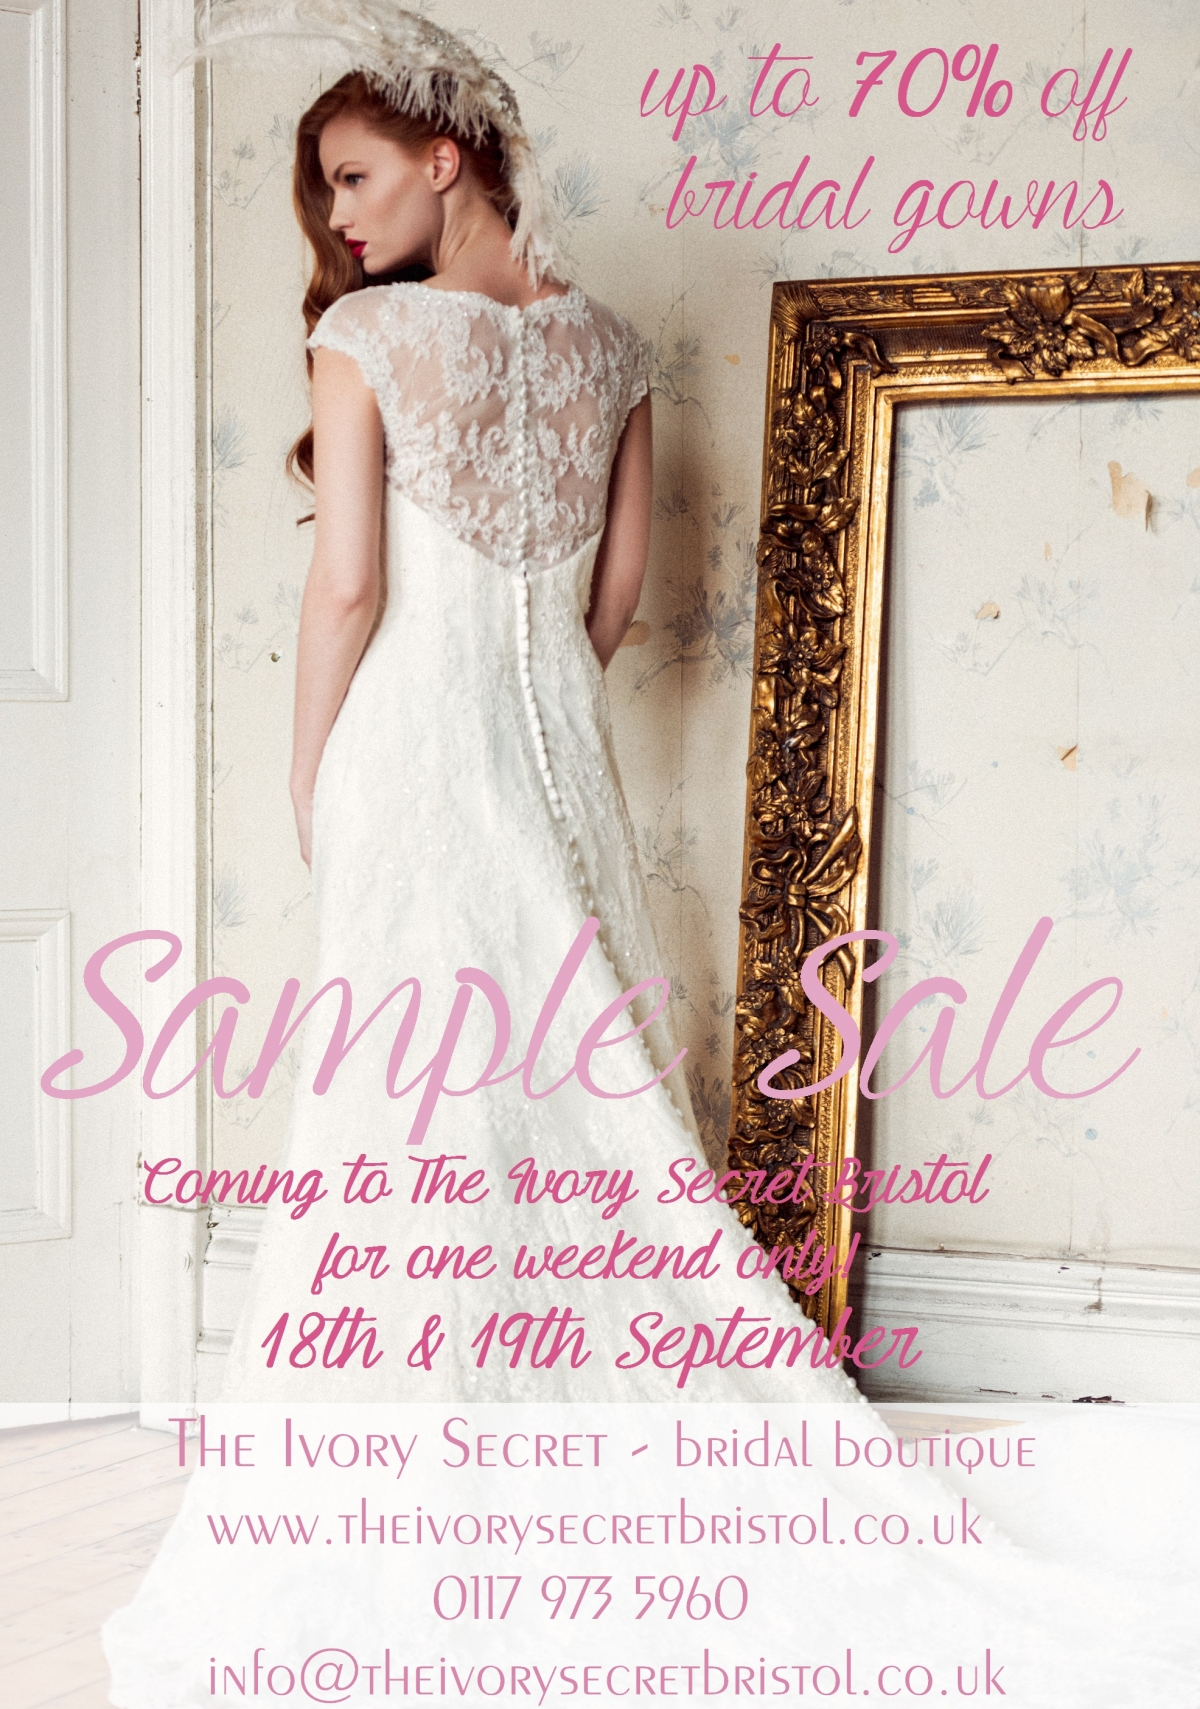 Sample sale at The Ivory Secret in Bristol